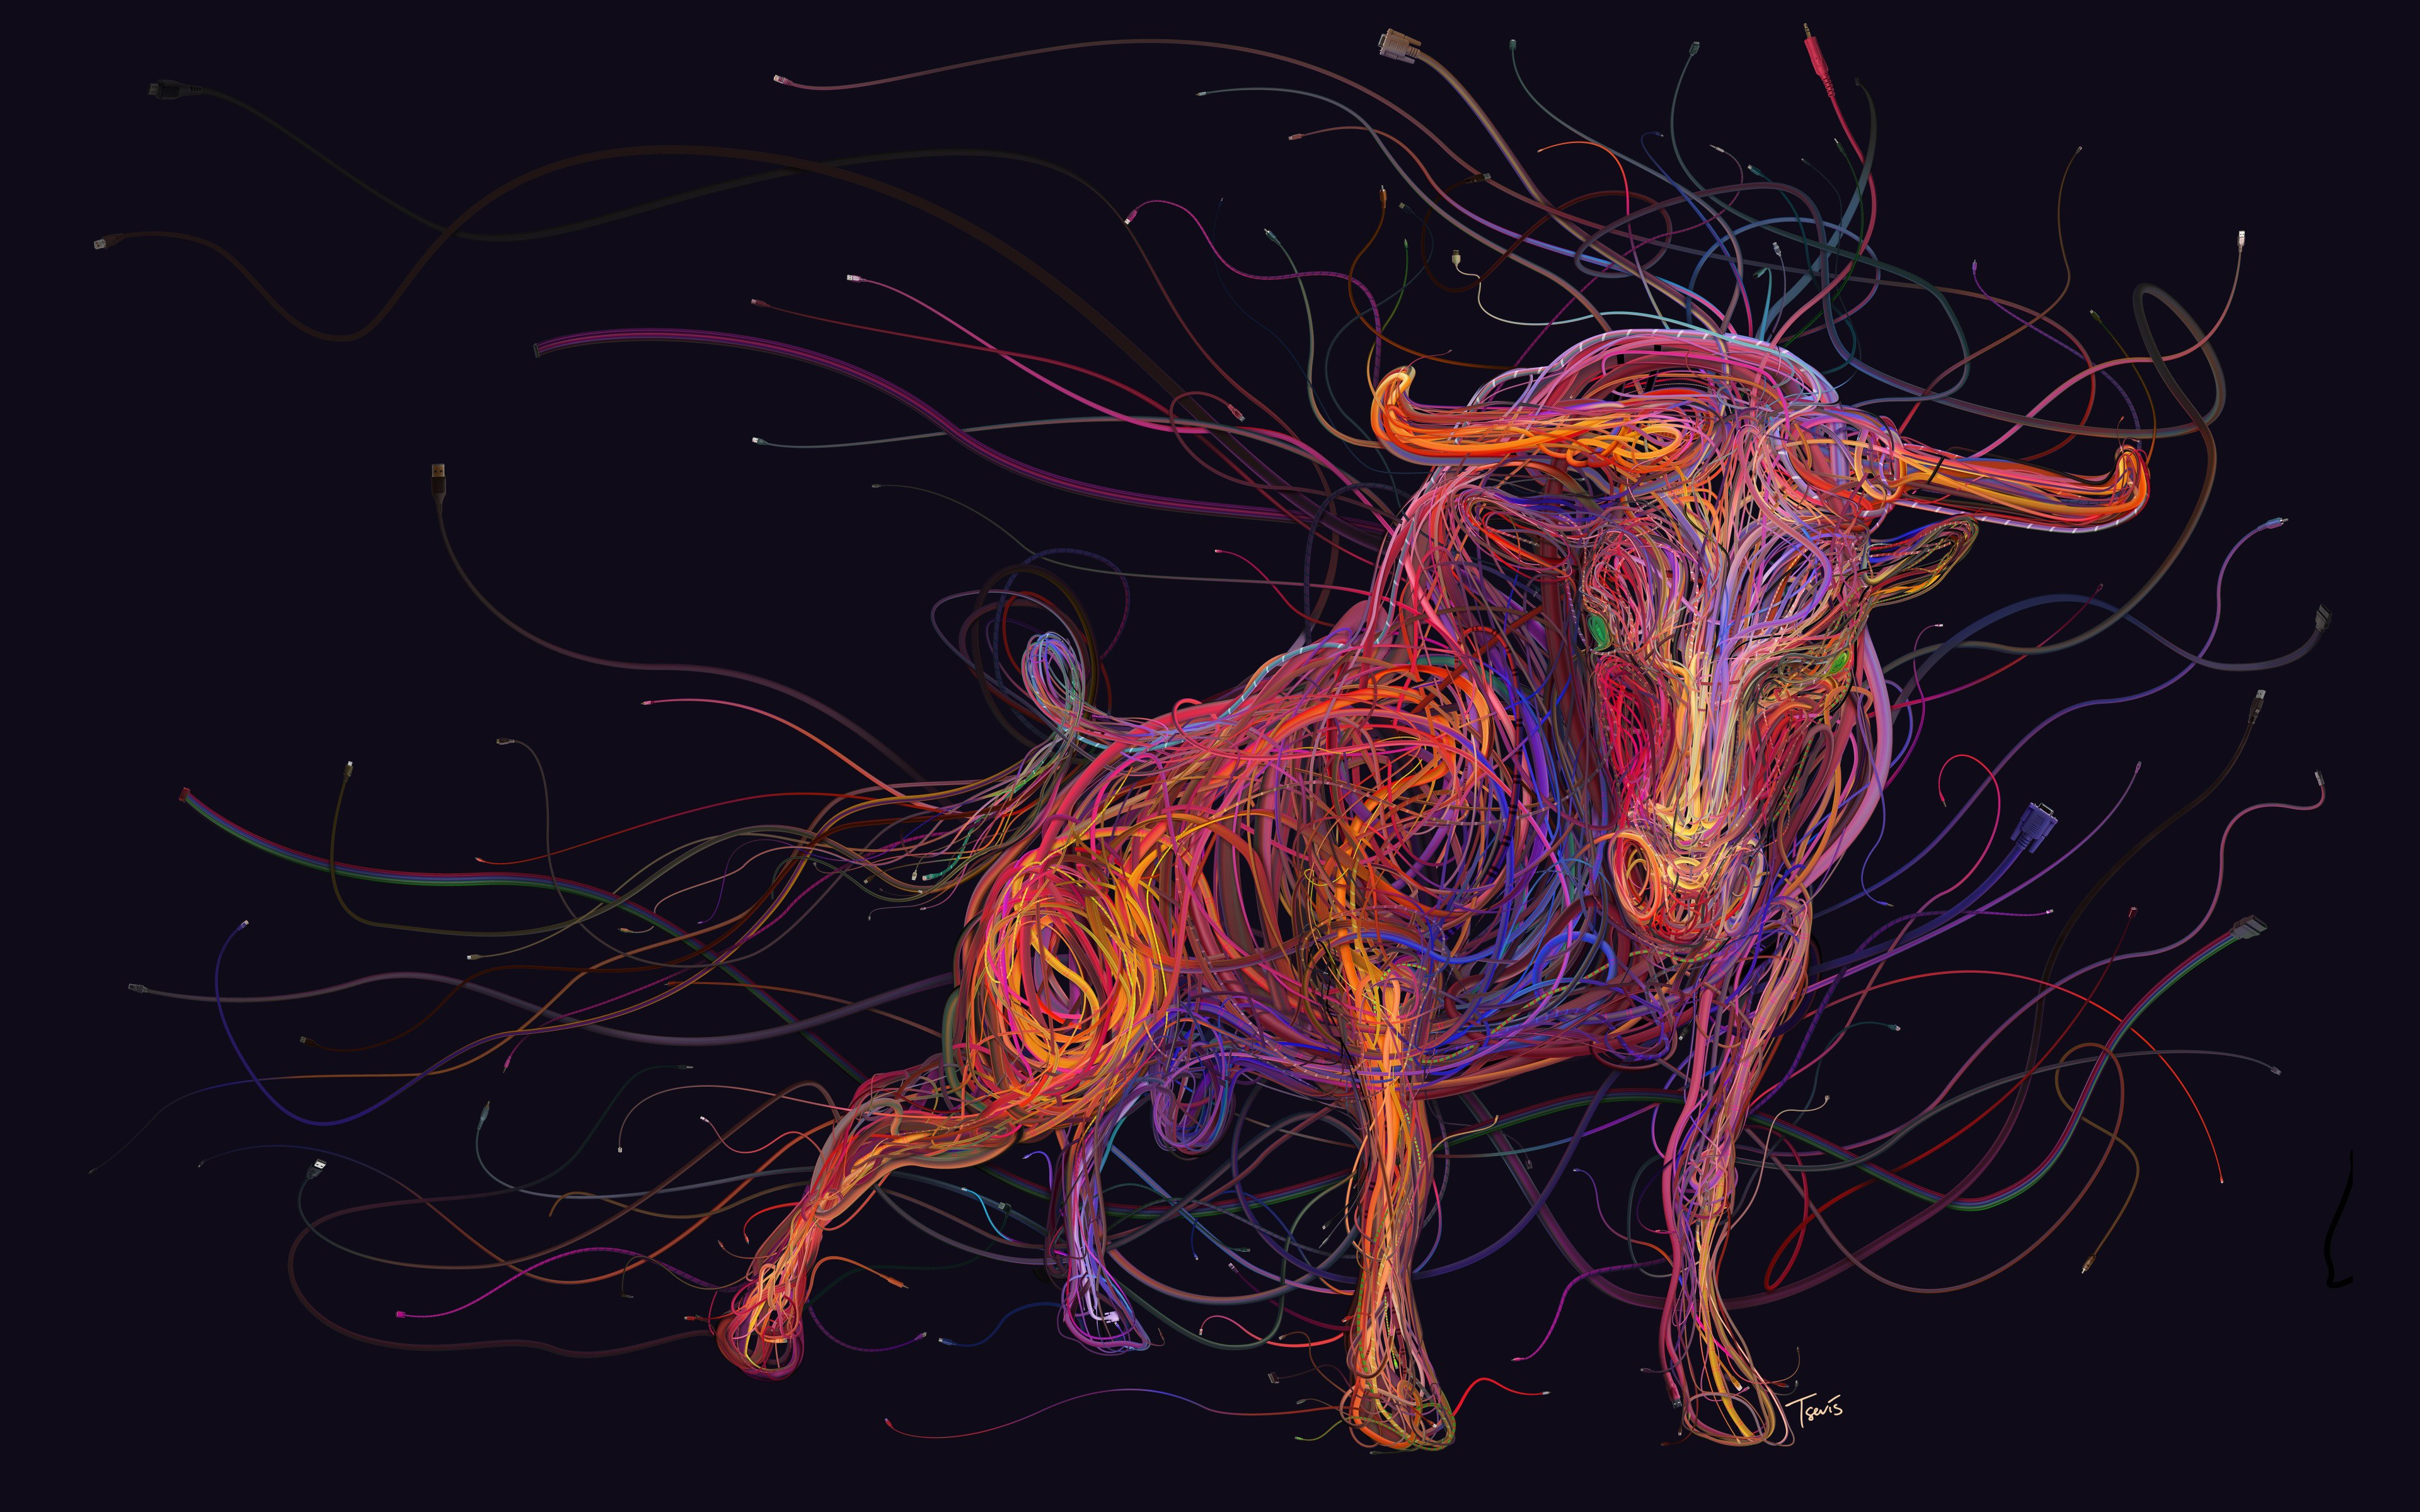 26 bull hd wallpapers background images wallpaper abyss bull hd wallpapers background images